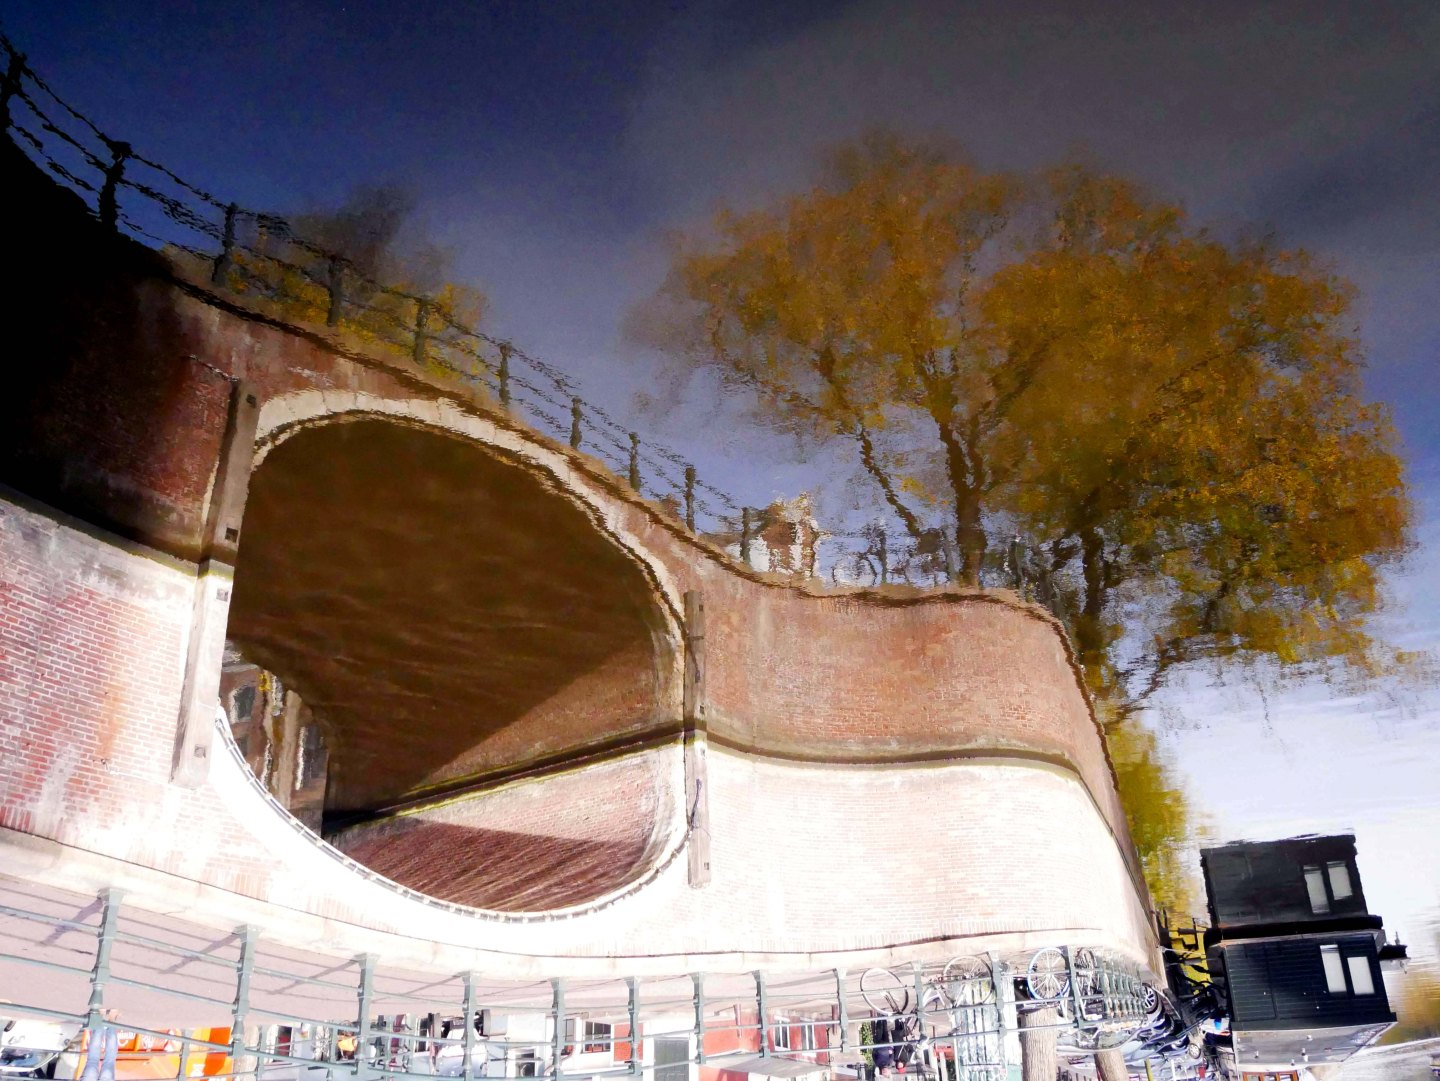 Reflection of a bridge, trees, houseboat, bikes and blue sky on a canal in Amsterdam - the Netherlands. The picture is upside down